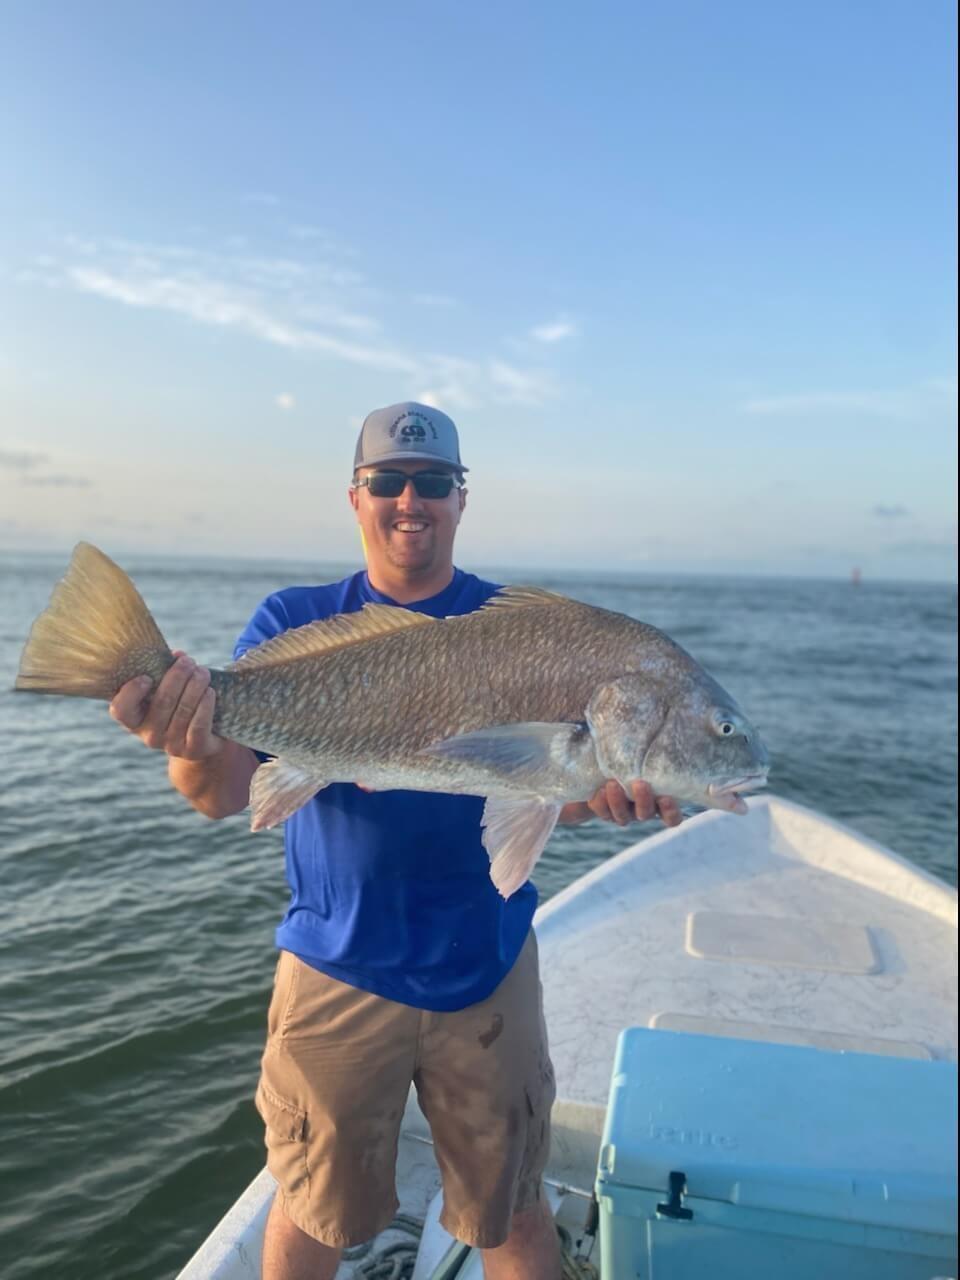 Full Day or Half Day Jetty/Bay Fishing   Captain Experiences